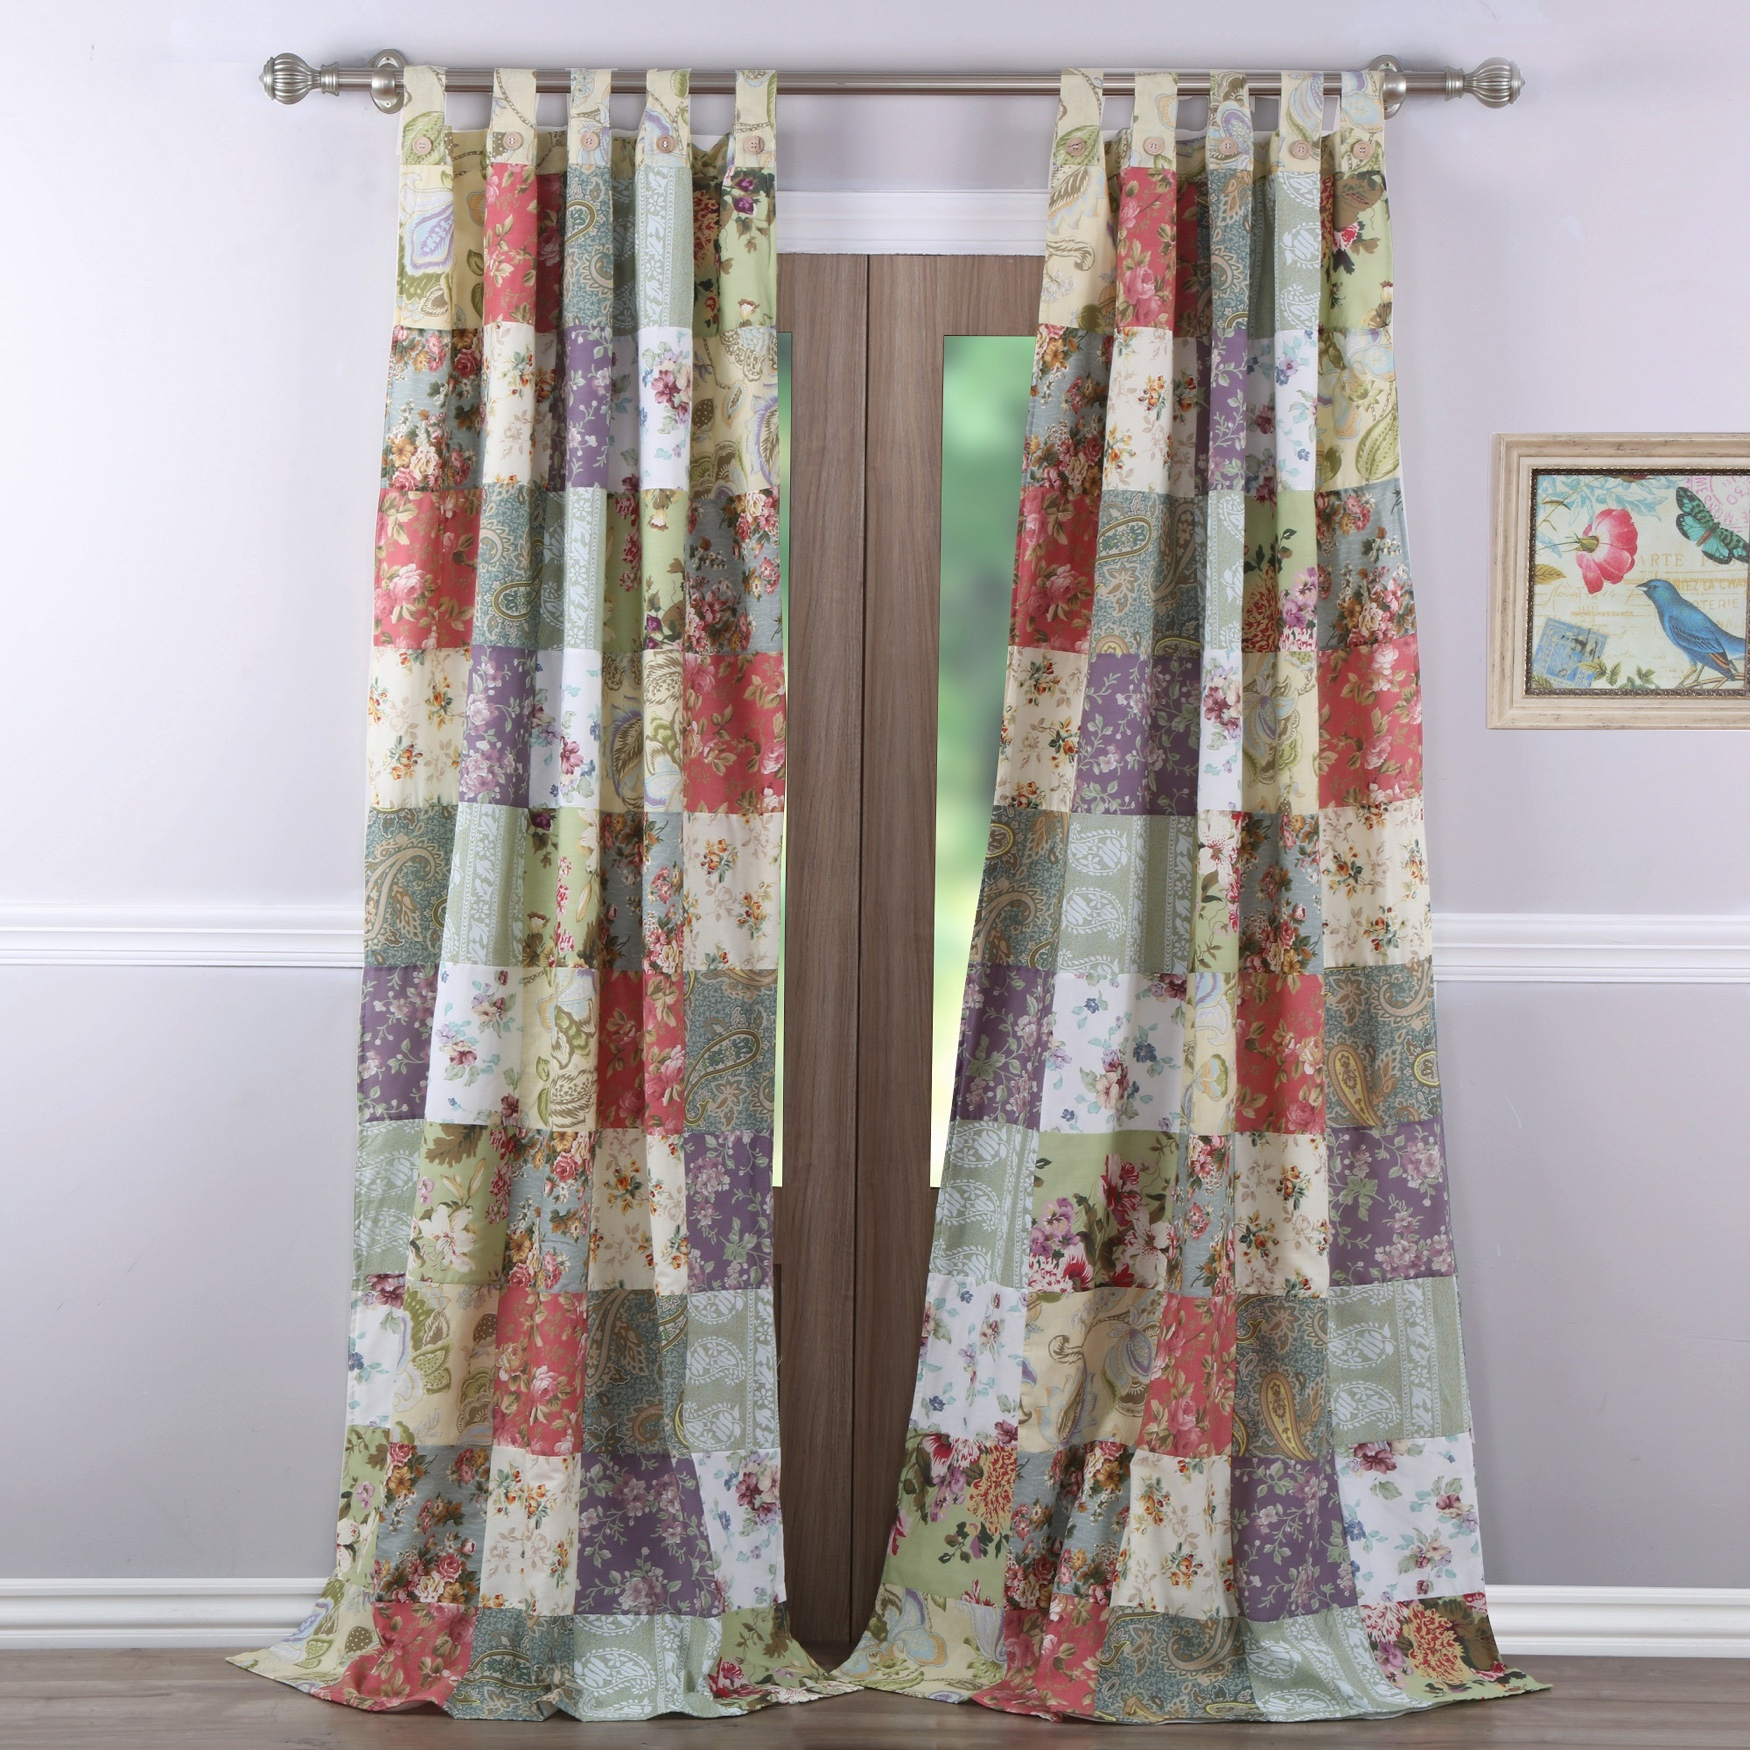 Blooming Prairie Curtain Panel Pair by Greenland Home Fashions, MULTI